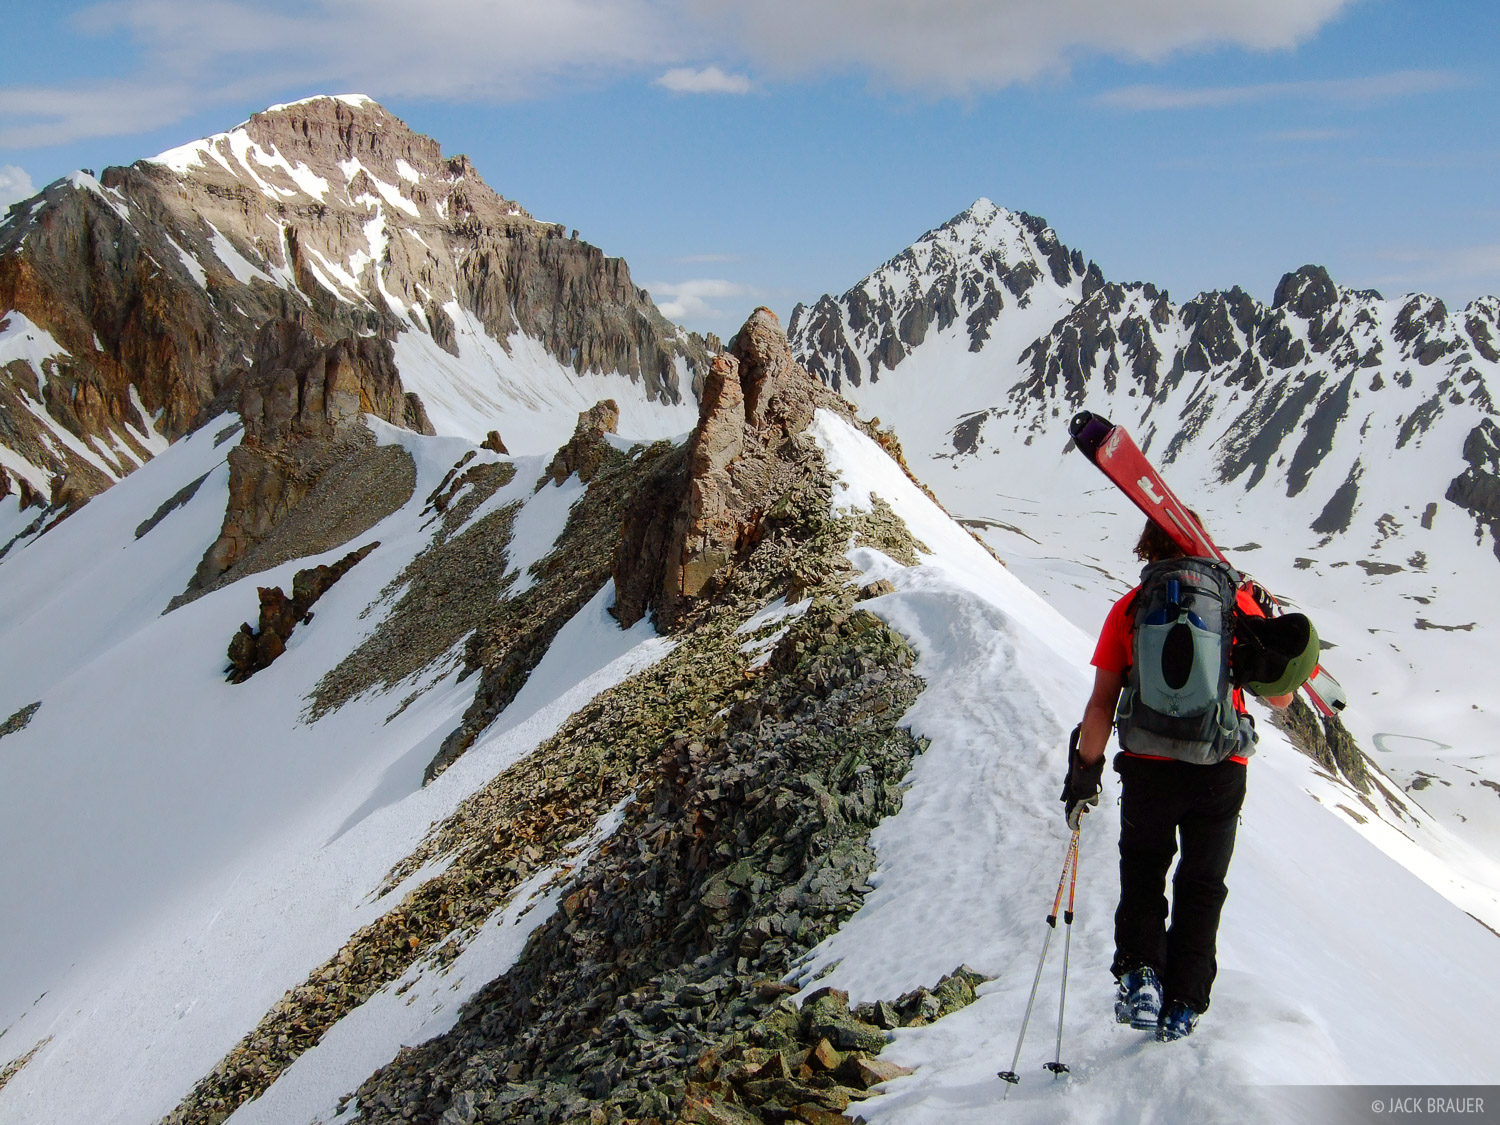 Hiking a ridgeline high above Yankee Boy Basin, about to ski down - June.  Gilpin Peak on the left, and Mt. Sneffels in the distance...